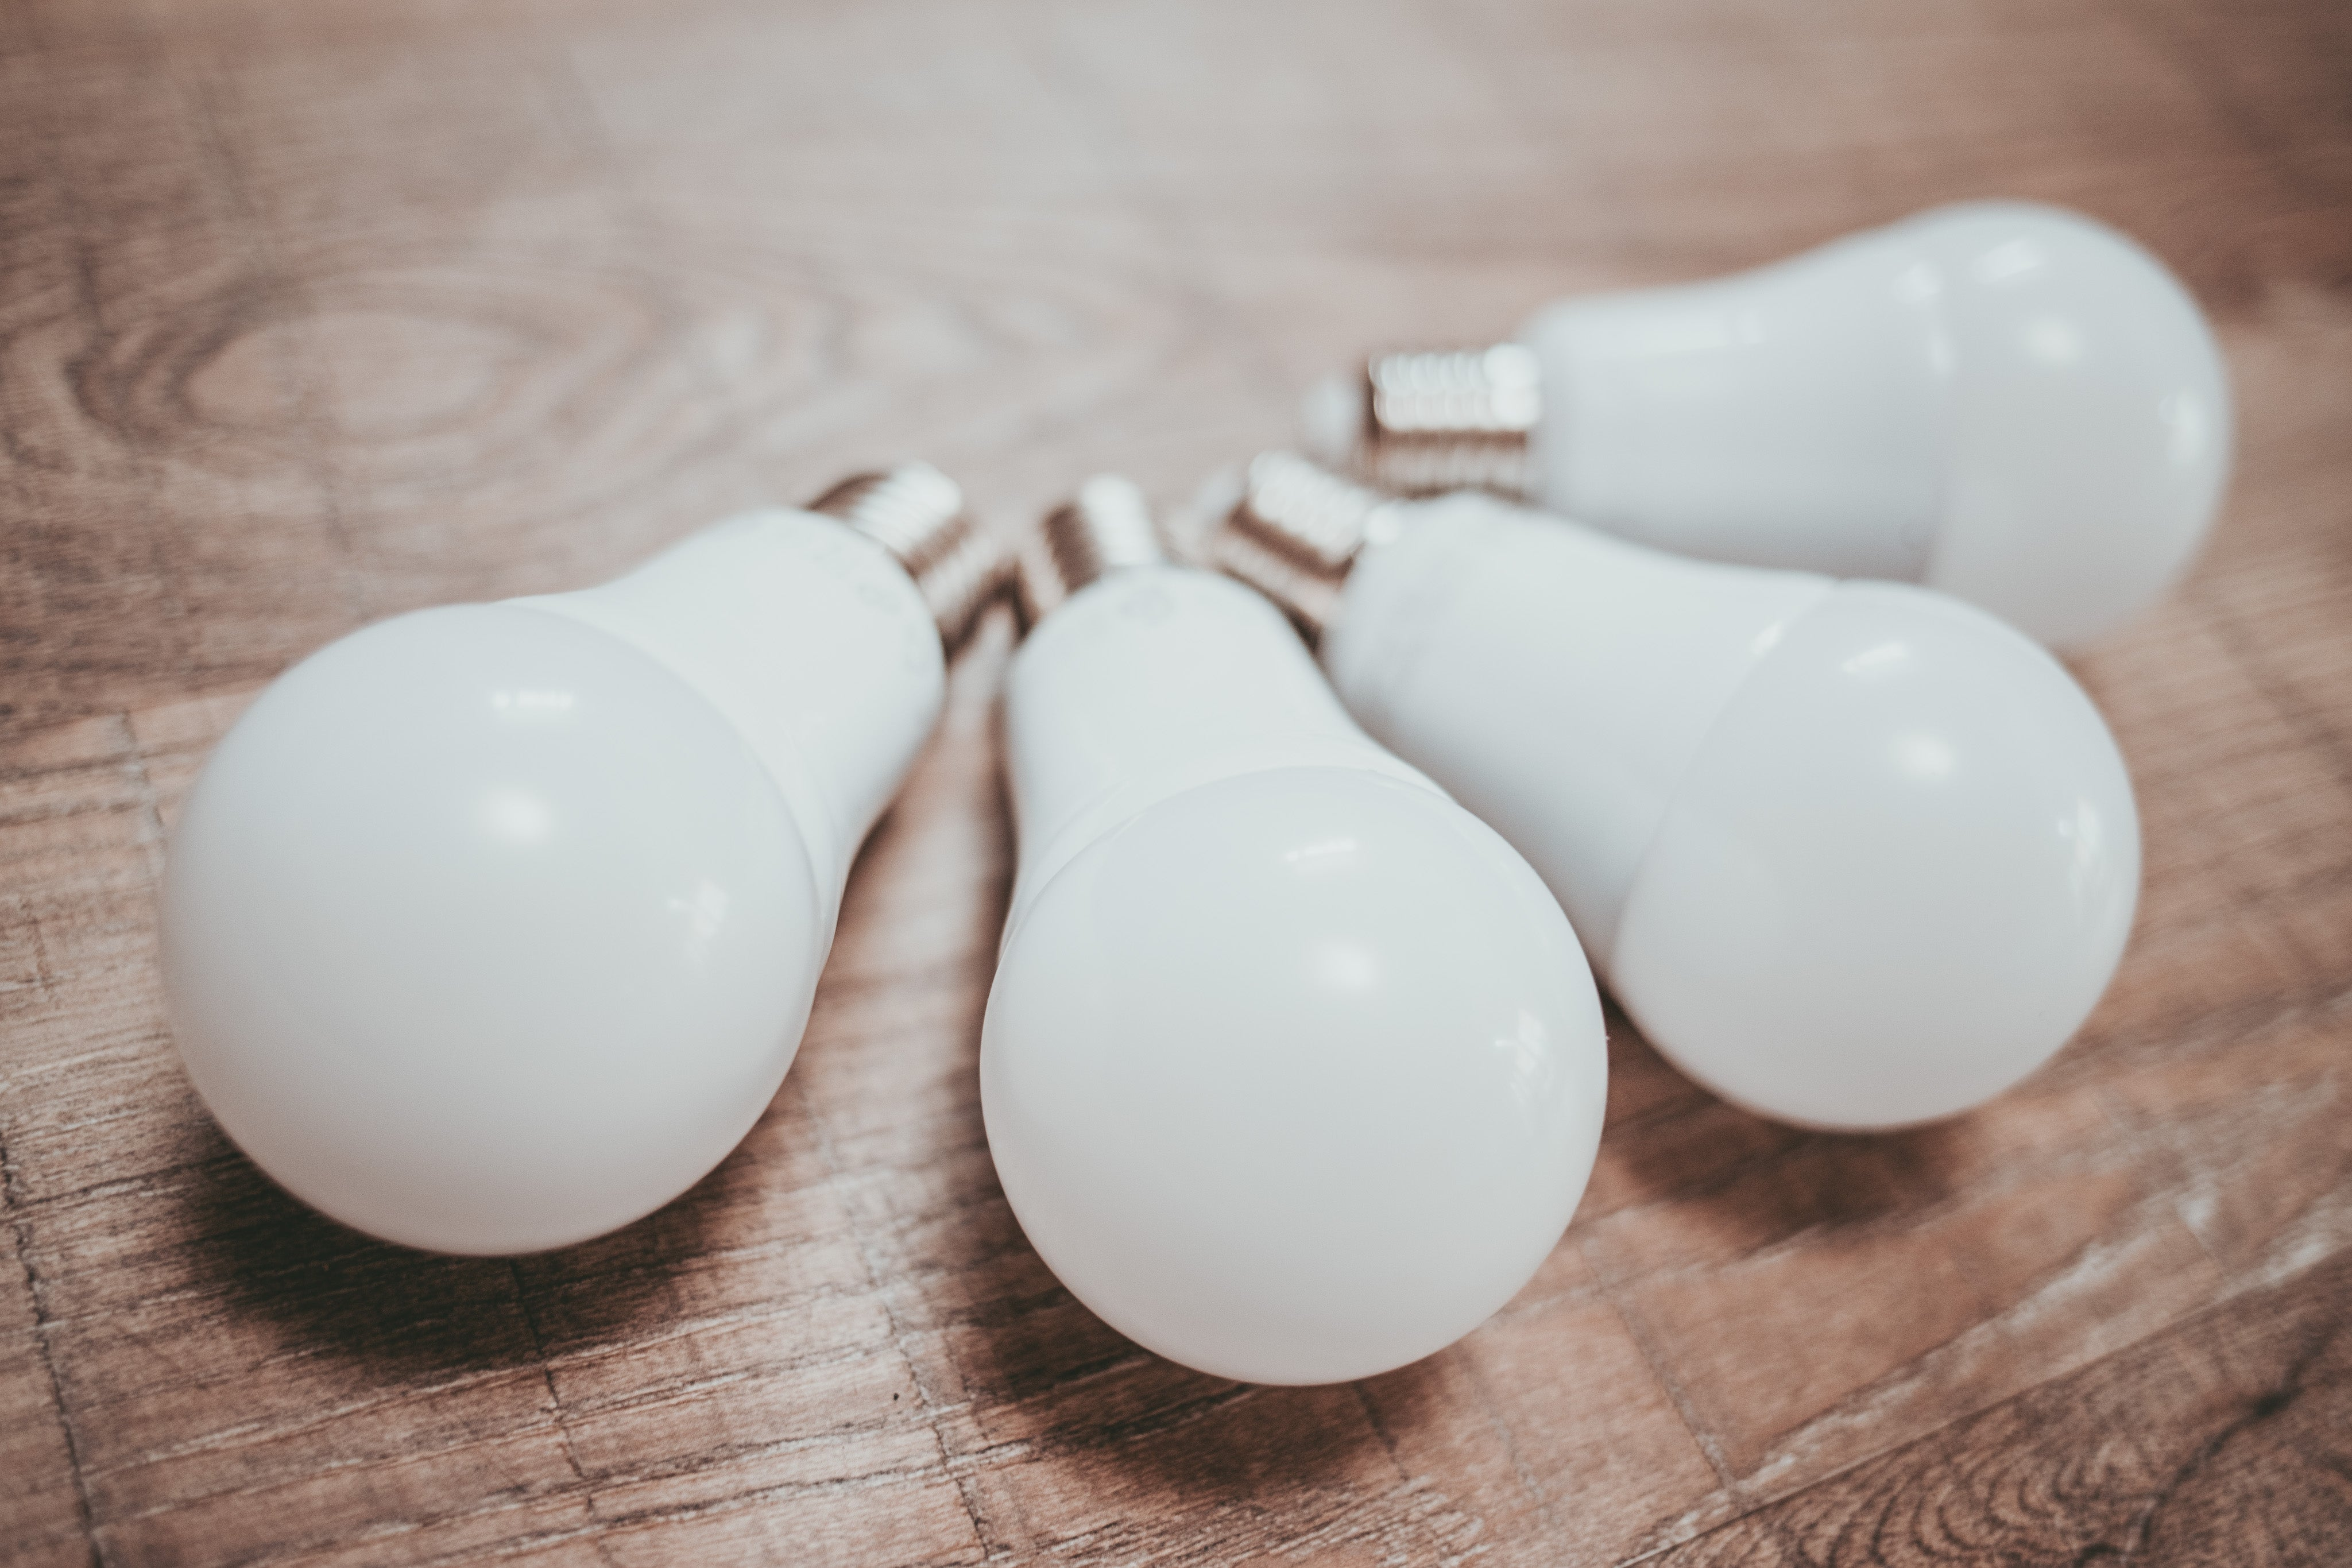 Diffusing bulbs to take product photos